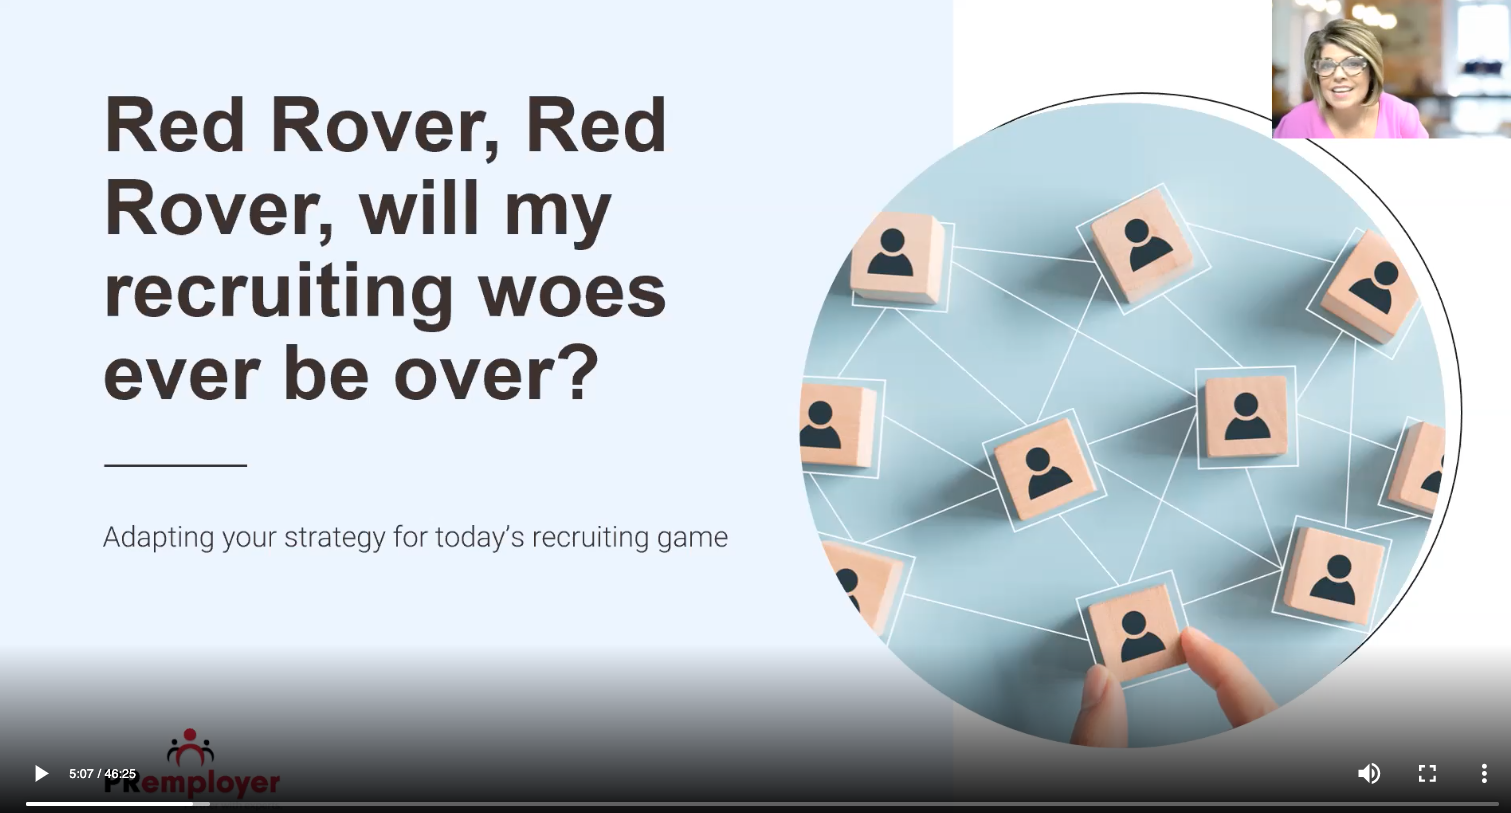 Webinar: Red Rover, Red Rover, When Will My Hiring Woes Be Over?